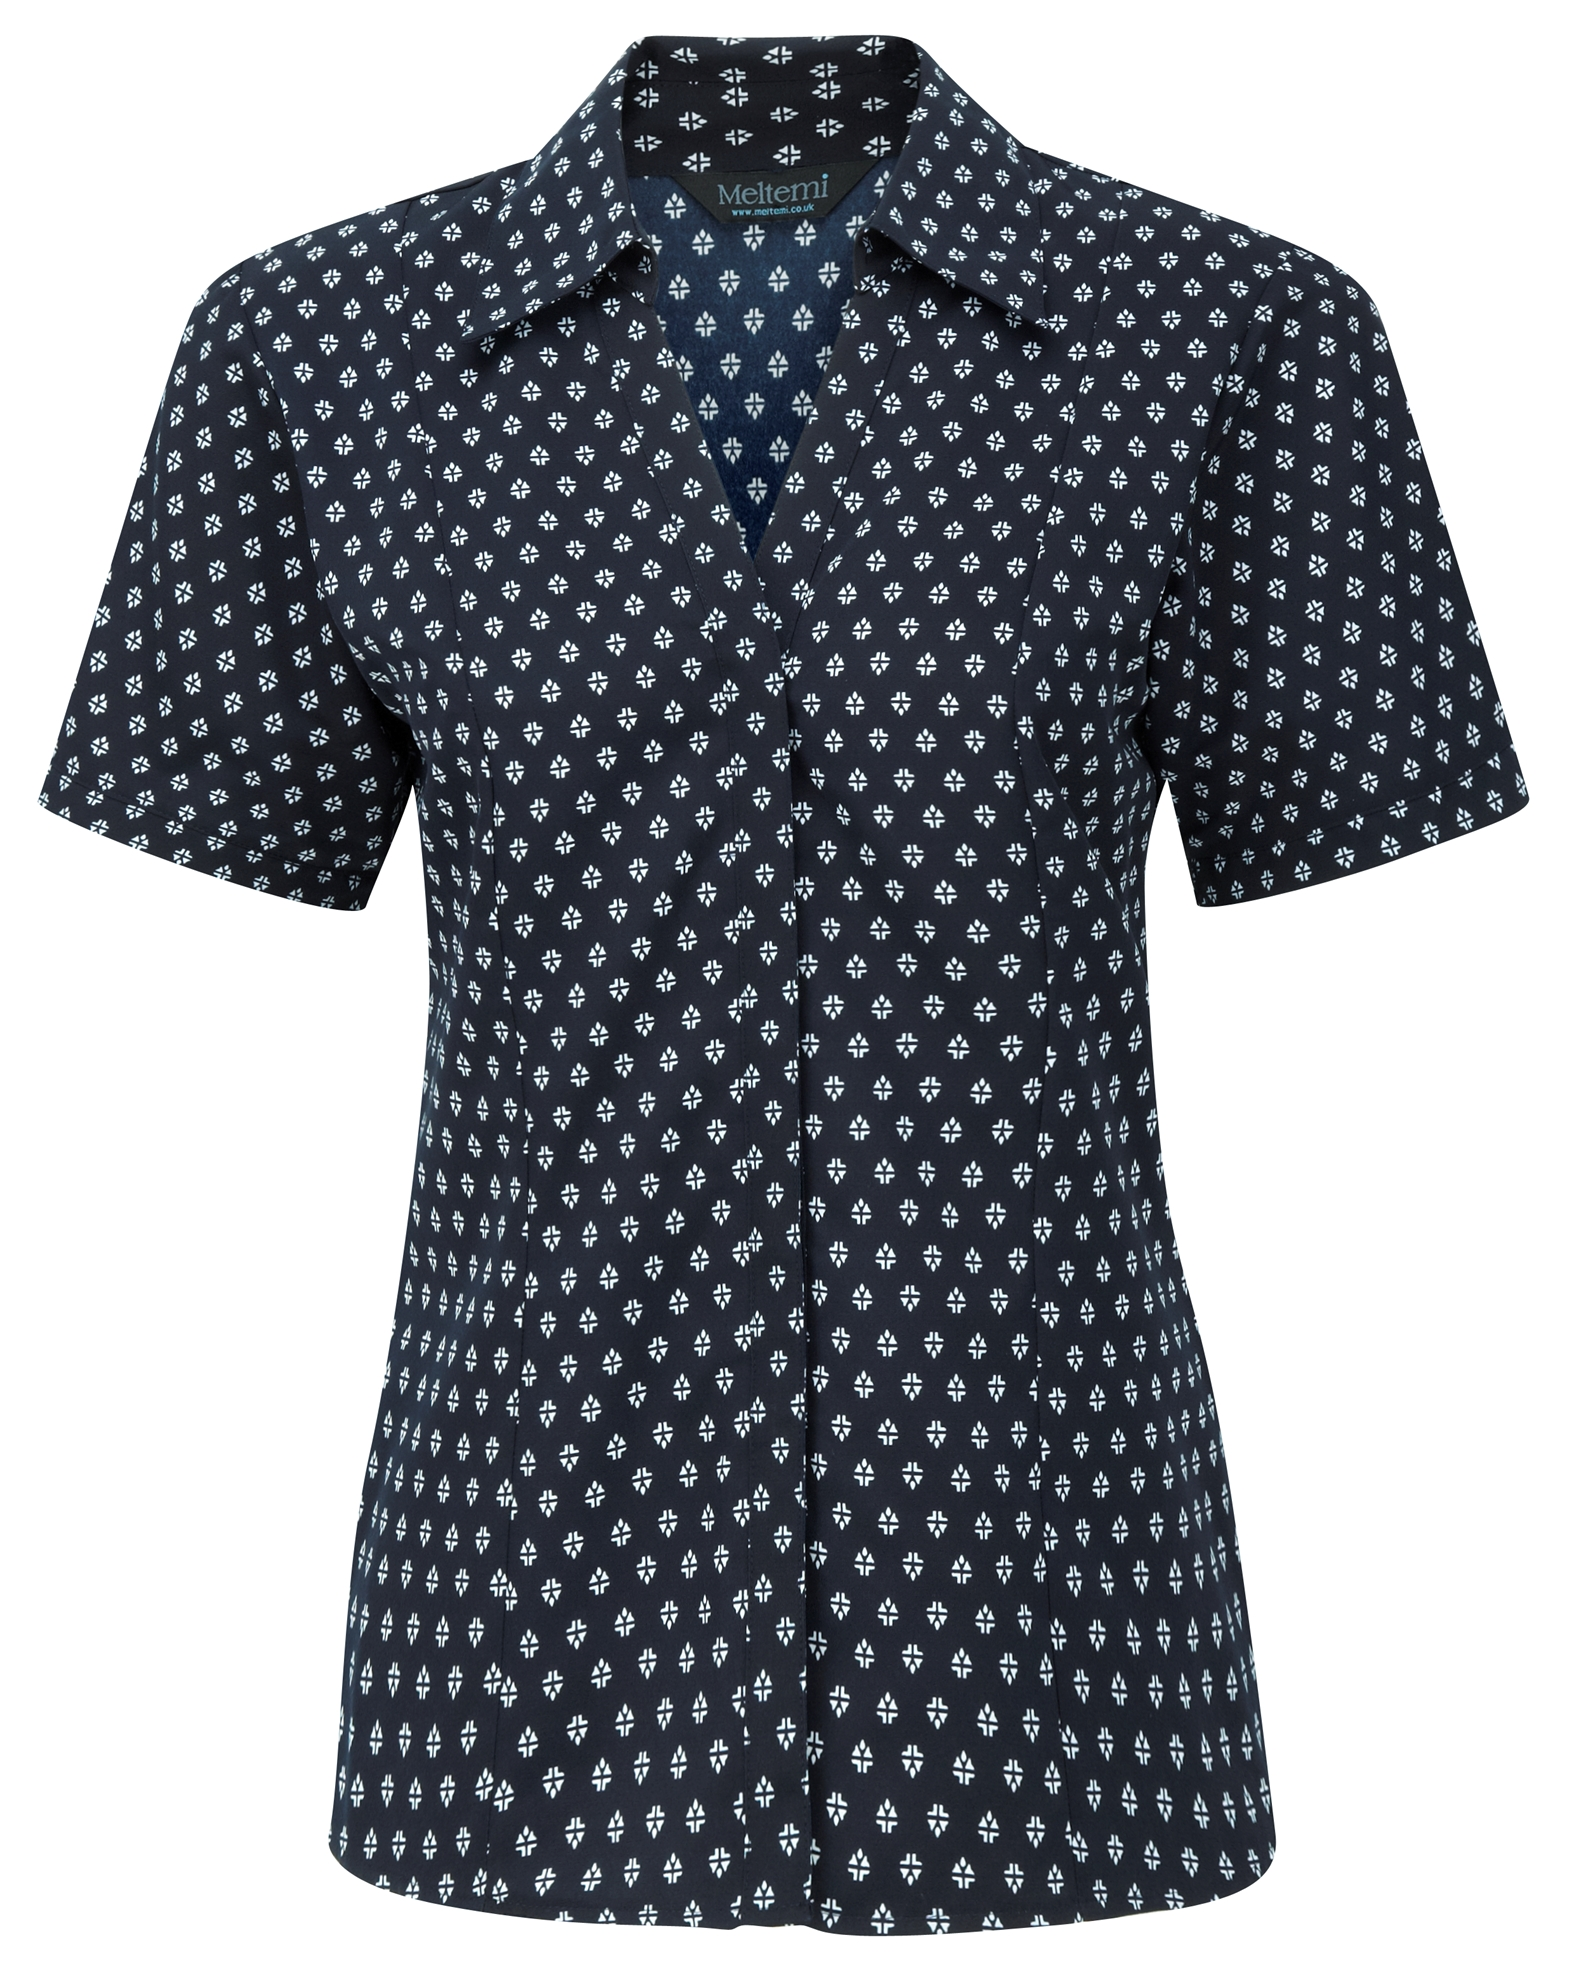 Picture of Semi-Fitted Polyester Blouse - Navy/White Fleur Print